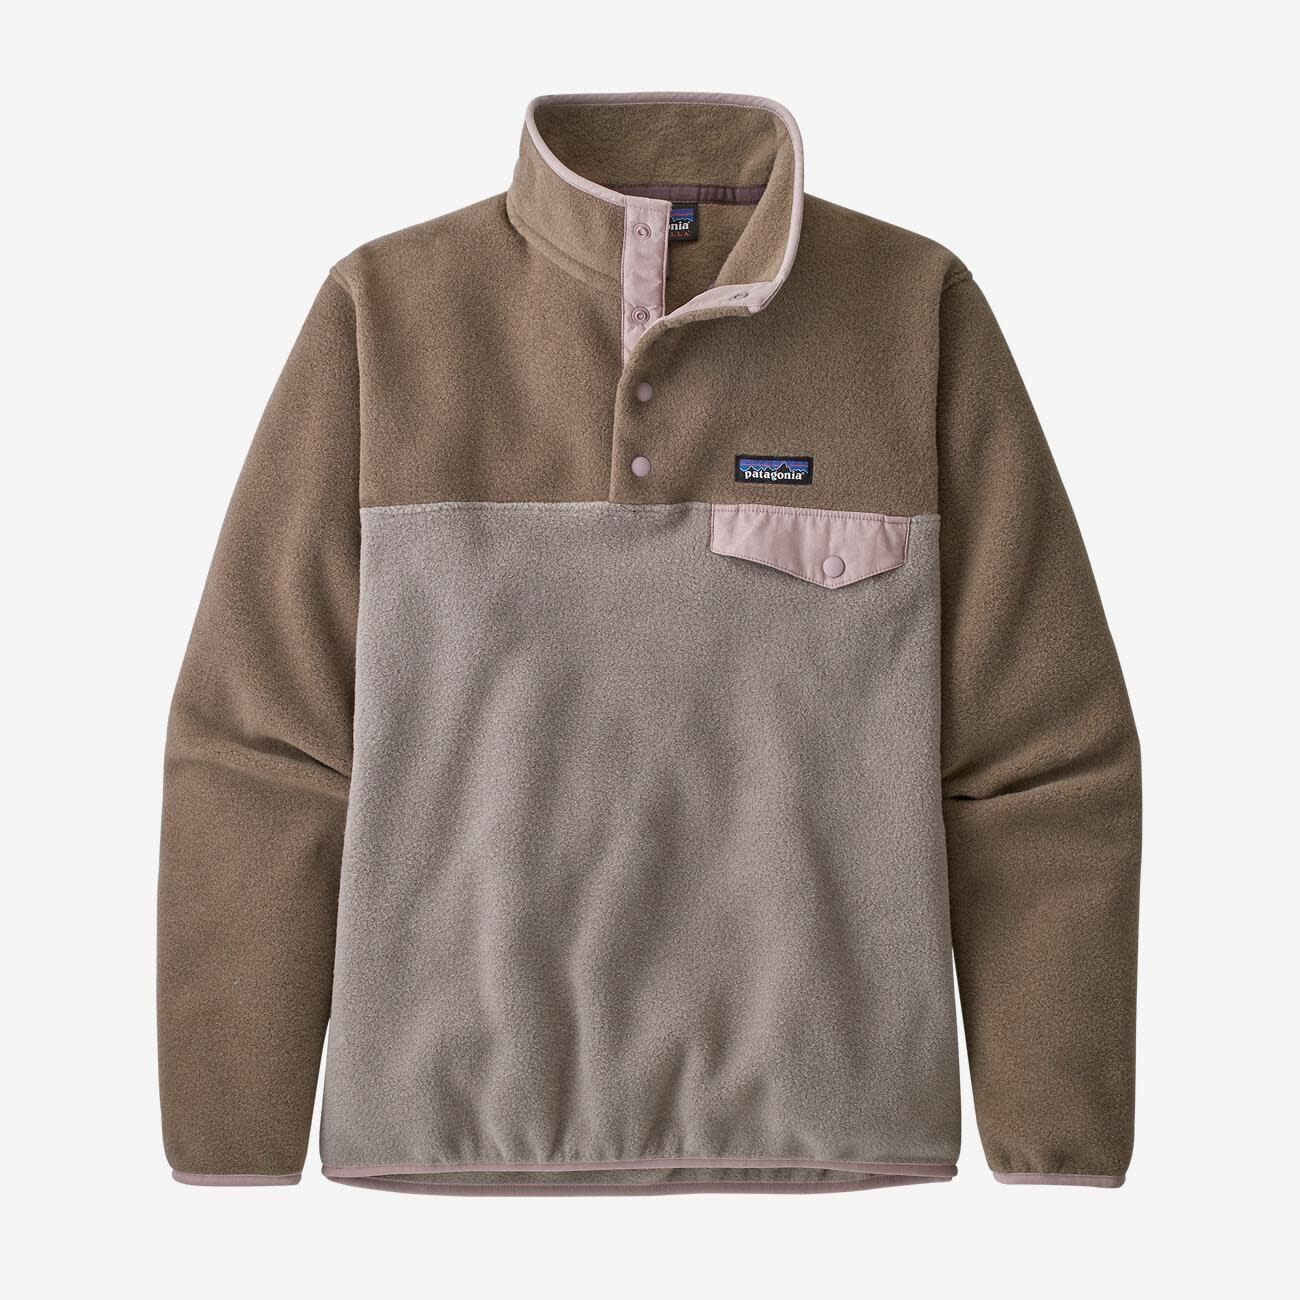 Patagonia Patagonia W's LW Synch Snap-T P/O Fleece